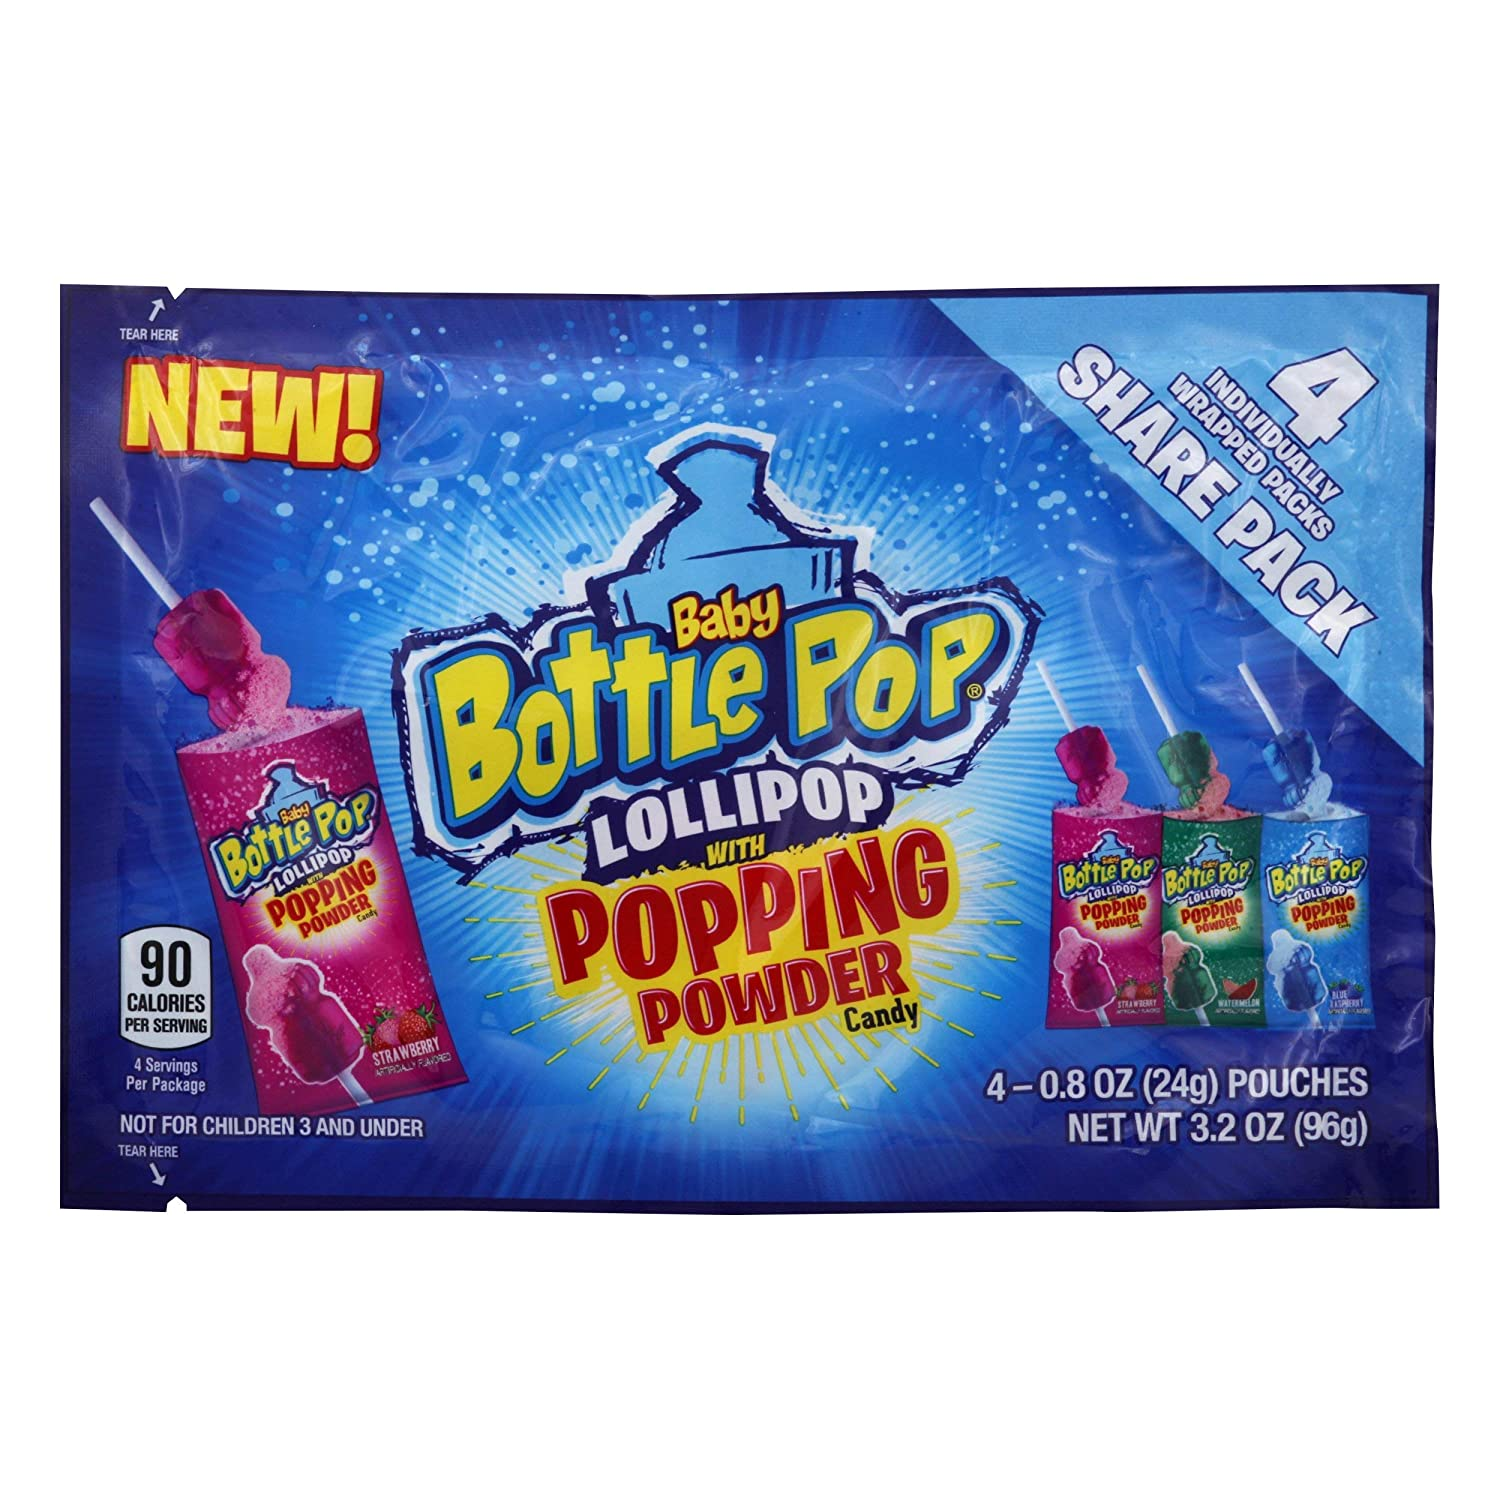 Baby Bottle Pop Candy w/ Popping Powder - Share Packs – Blue Raspberry, Watermelon, Strawberry Flavor (Pack of 12) - Fun Candy for Birthdays & Celebrations